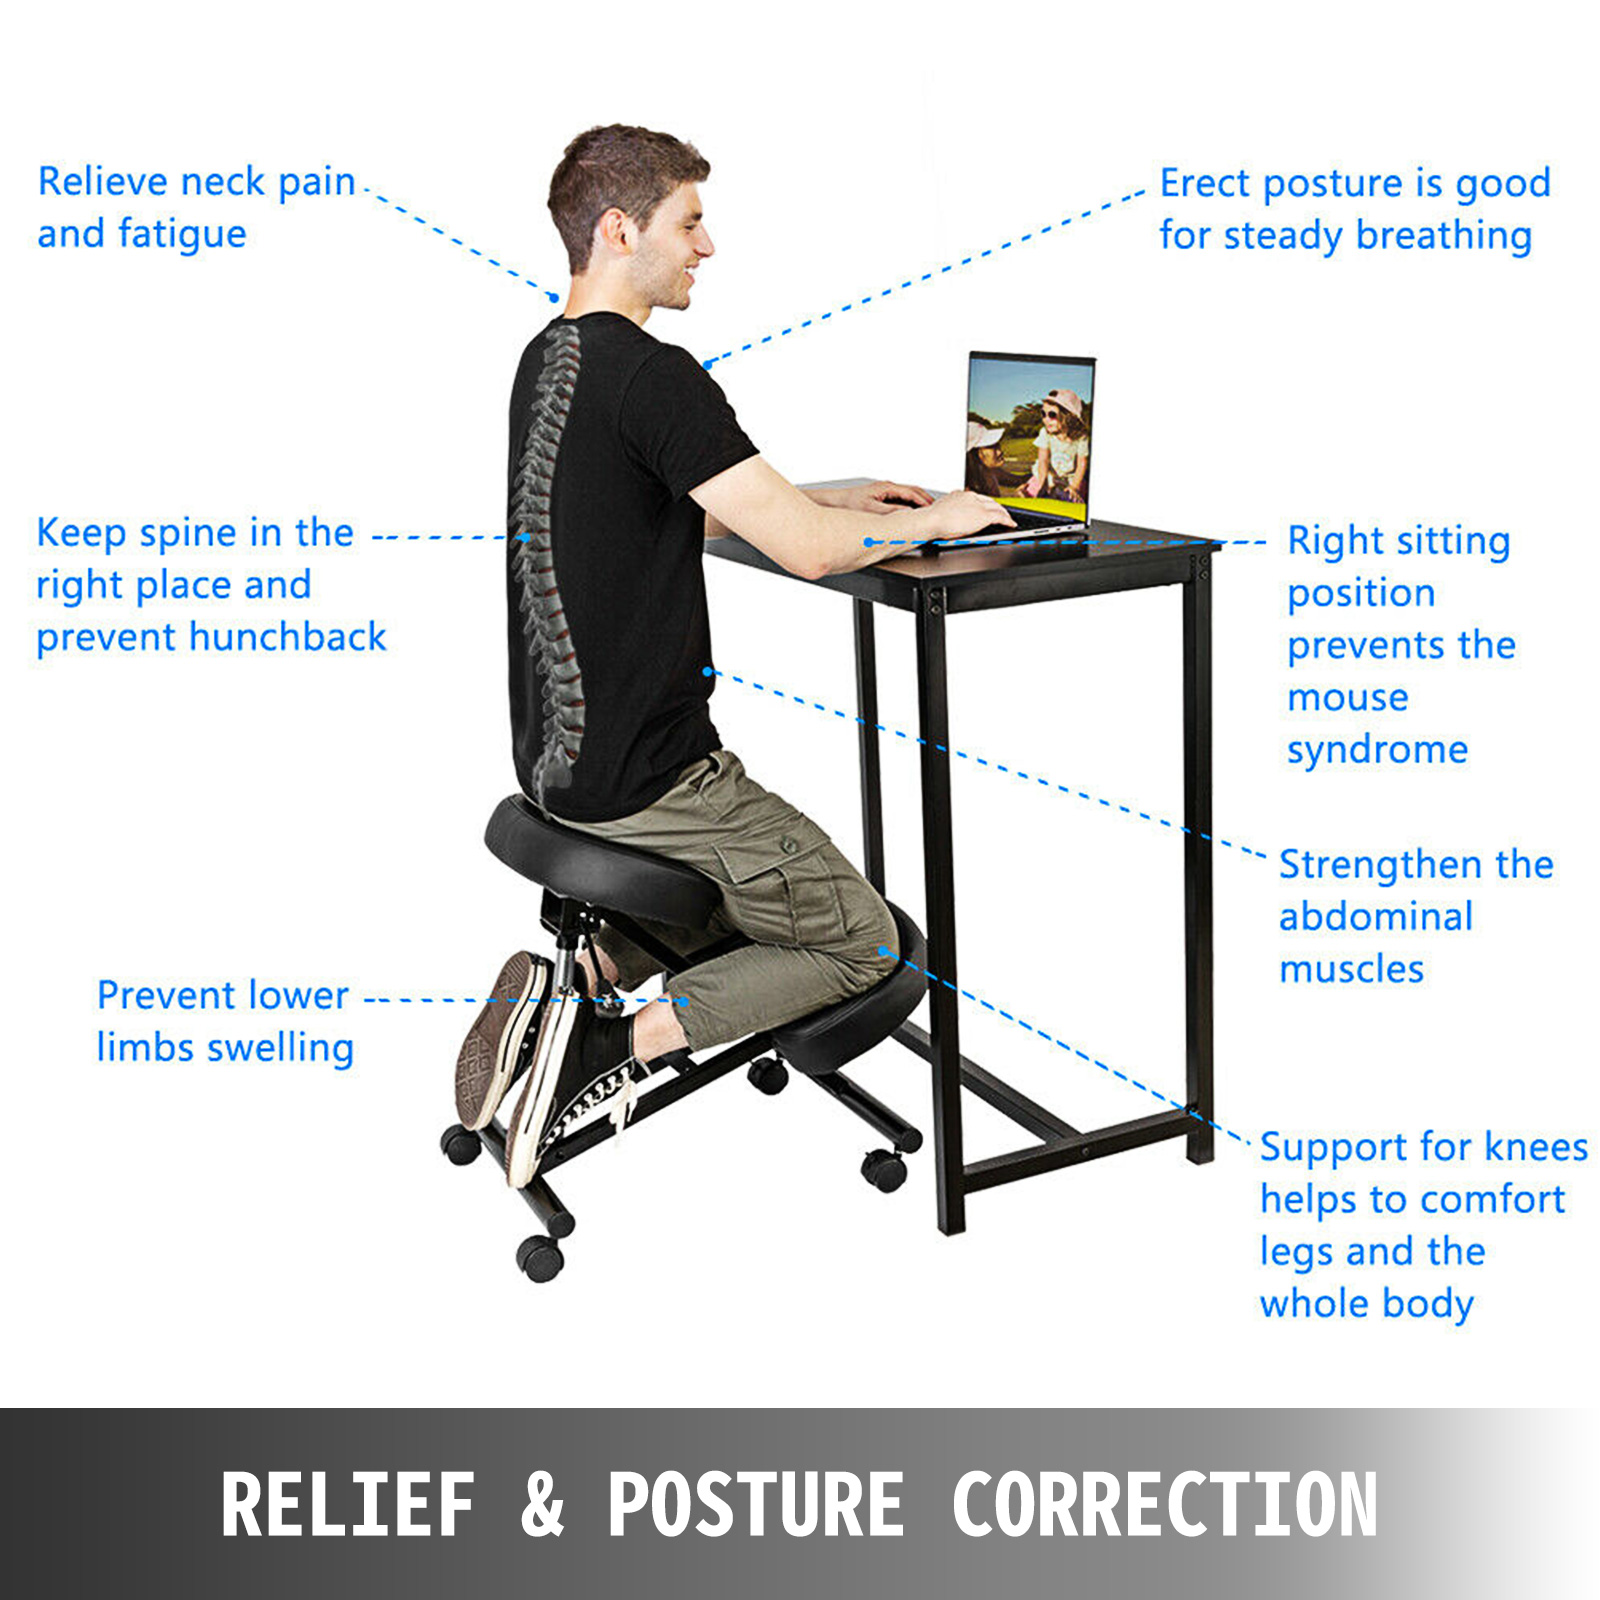 kneeling chair m100 2 - VEVOR Ergonomic Kneeling Chair Adjustable Kneeling Stool Thick Comfortable Cushions for Office Home Balancing Back Body Shaping